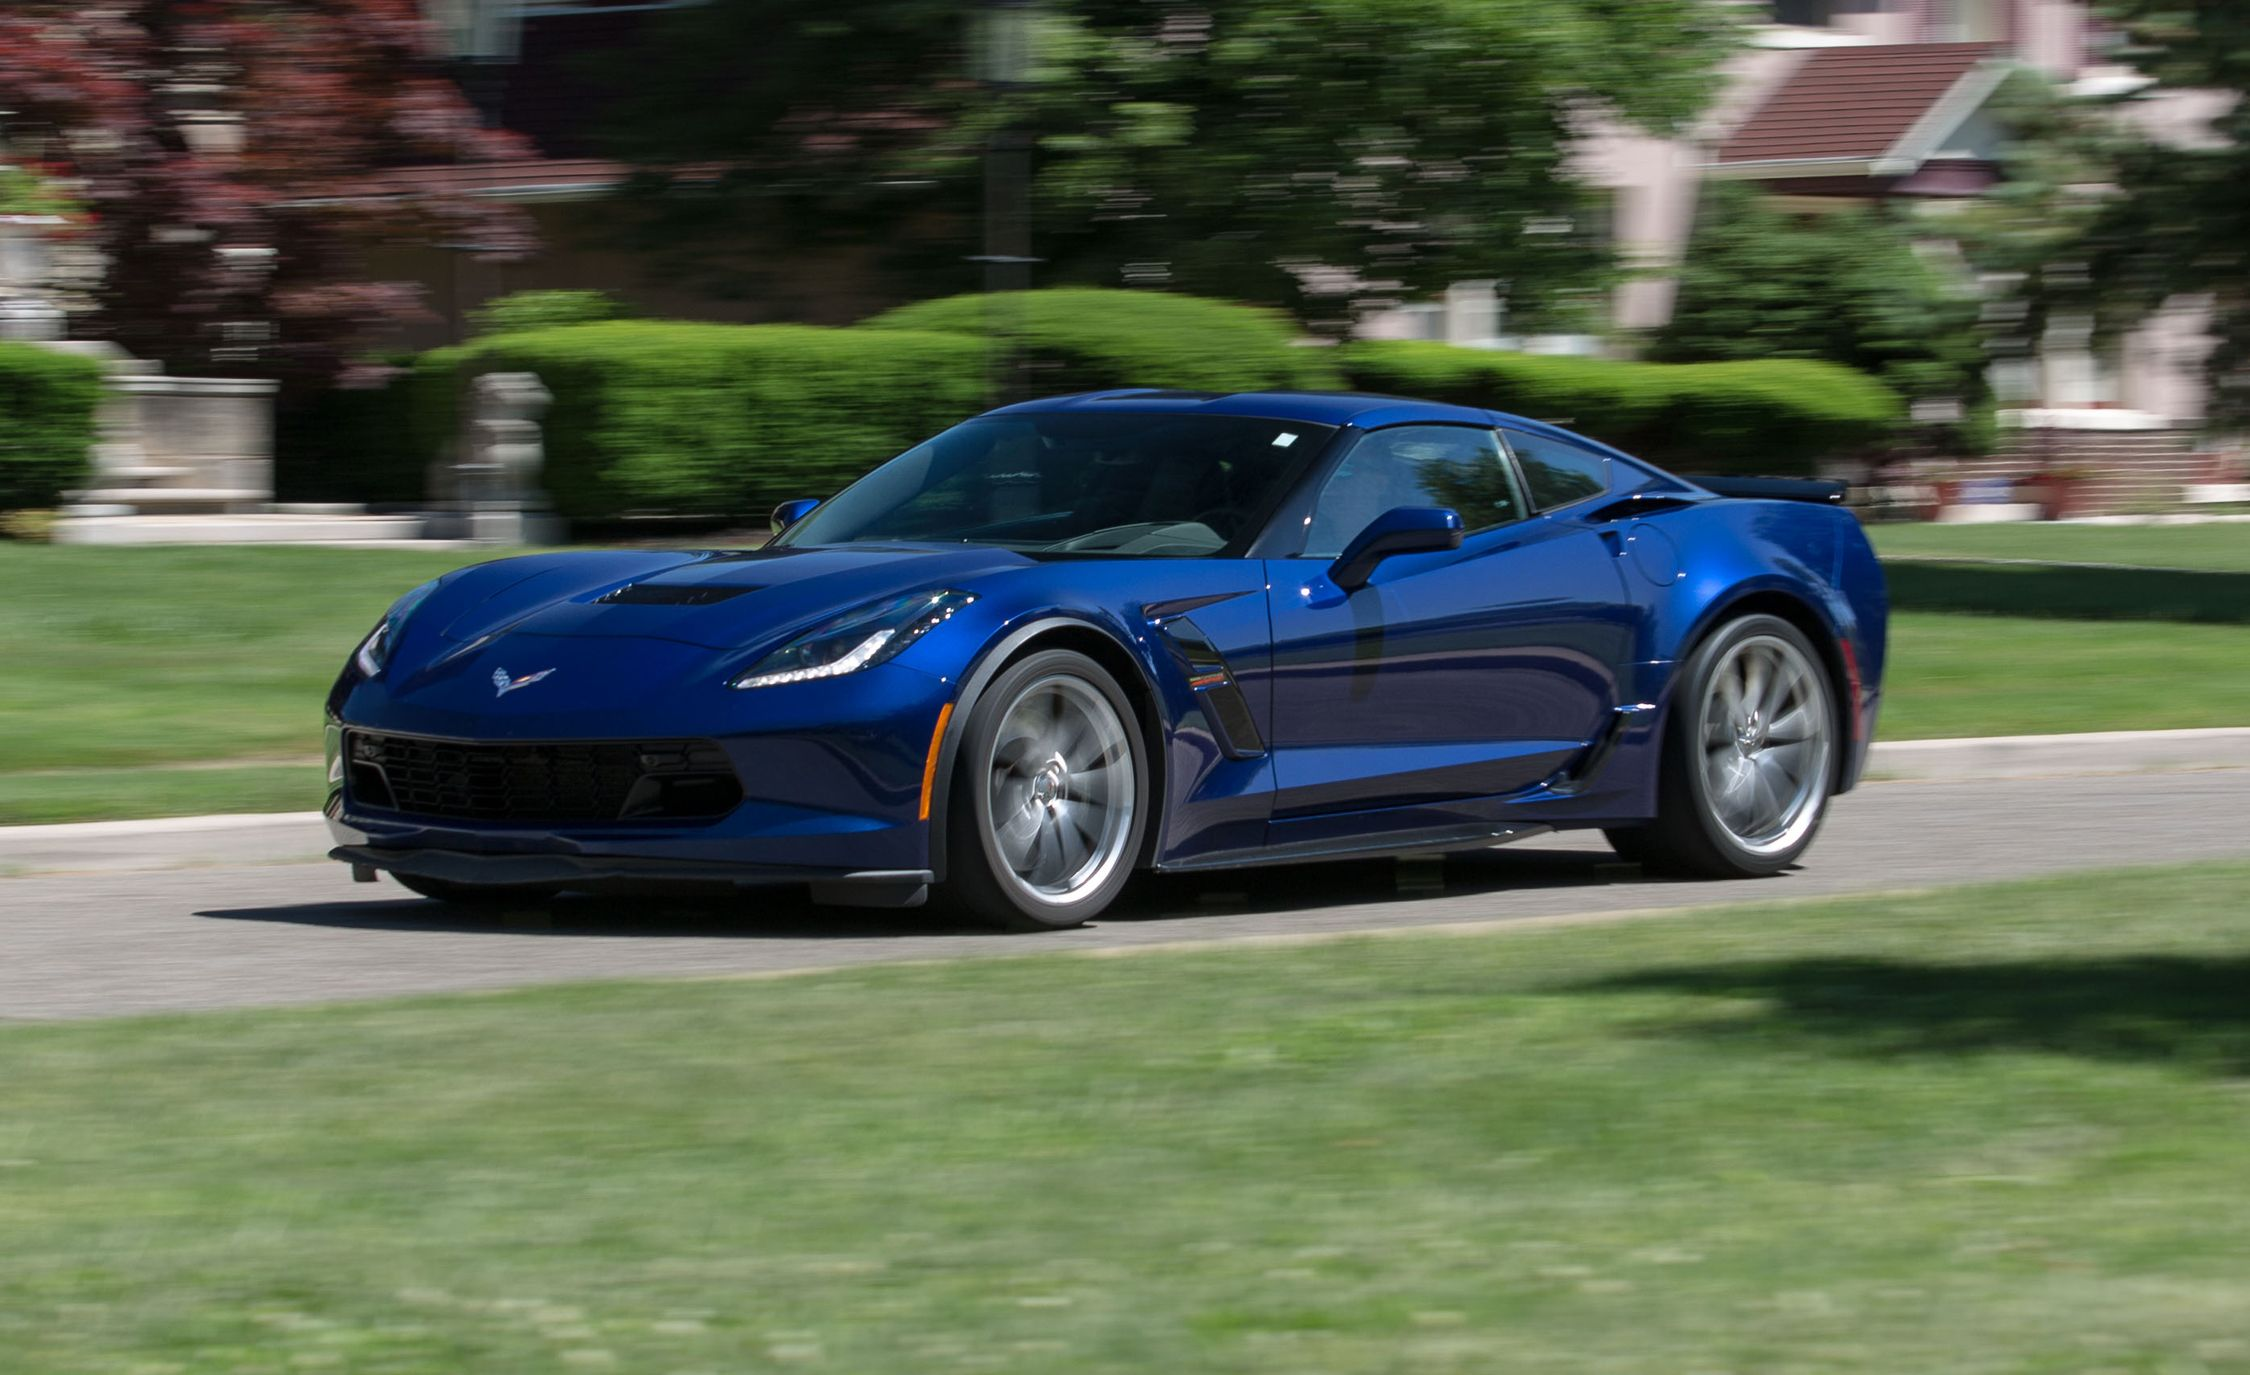 2017 Chevrolet Corvette Grand Sport Long Term Test Update Review Car And Driver